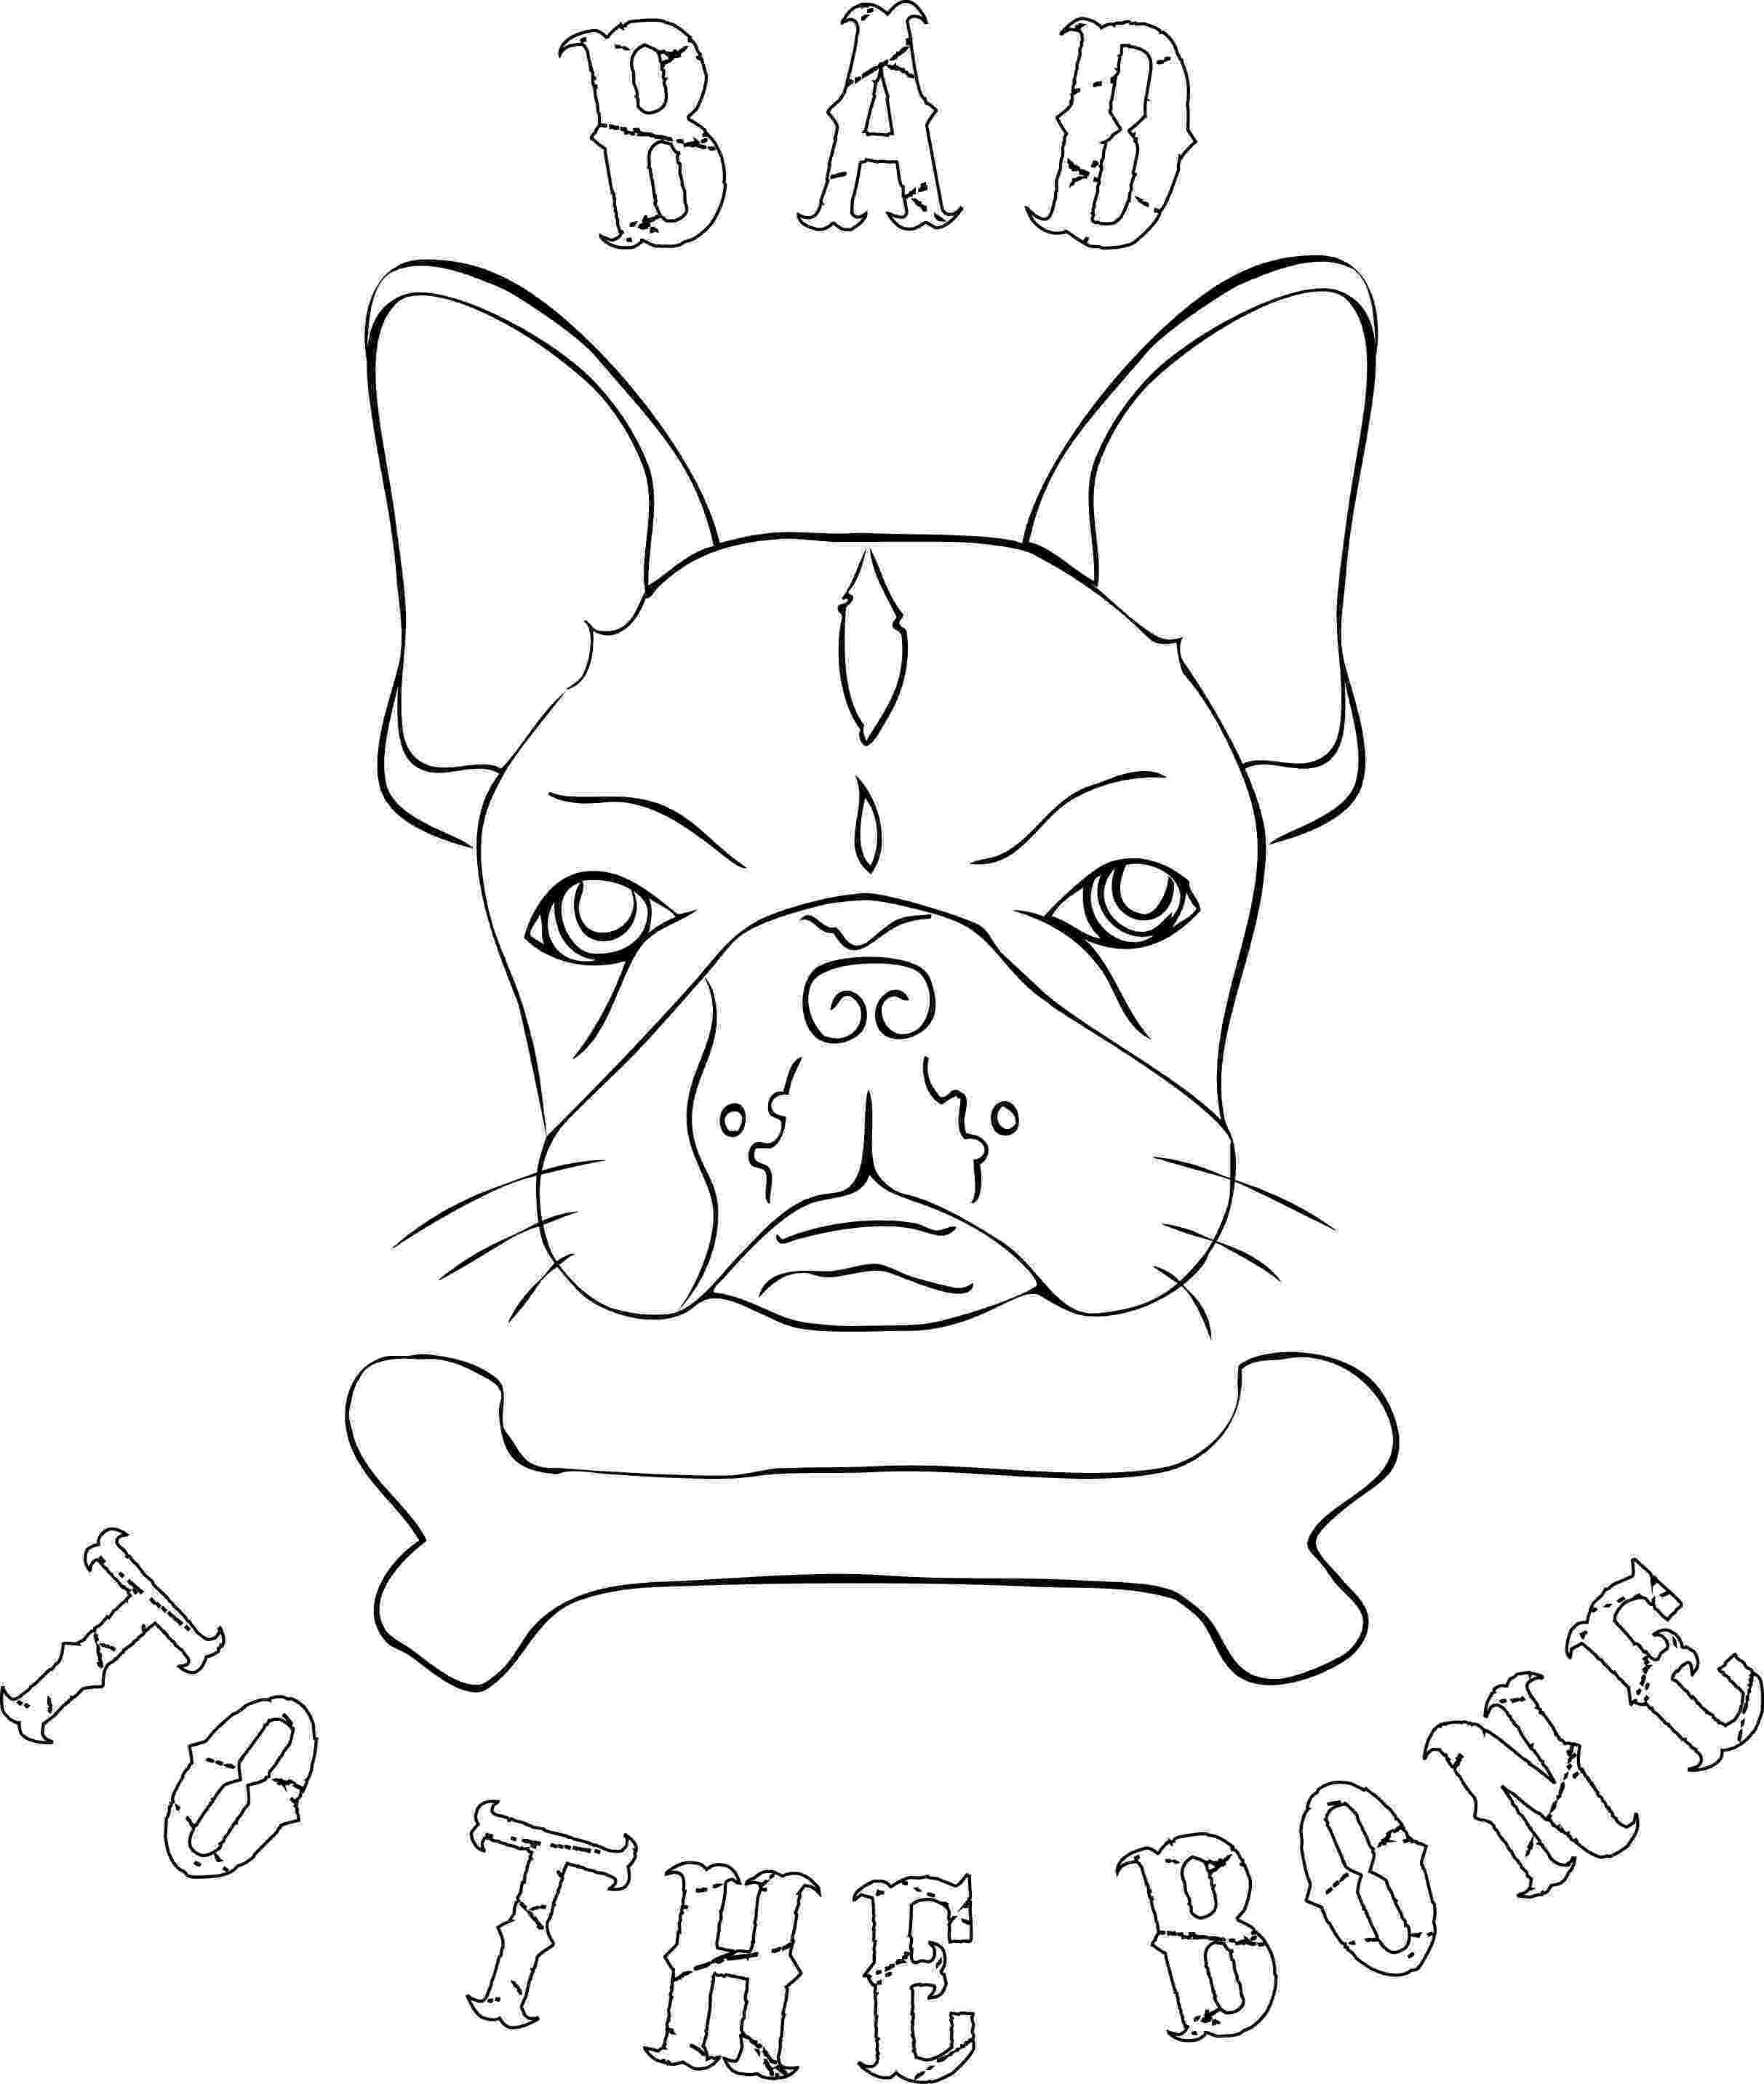 french bulldog coloring pages french bulldog rescue network jv color corner coloring french bulldog pages